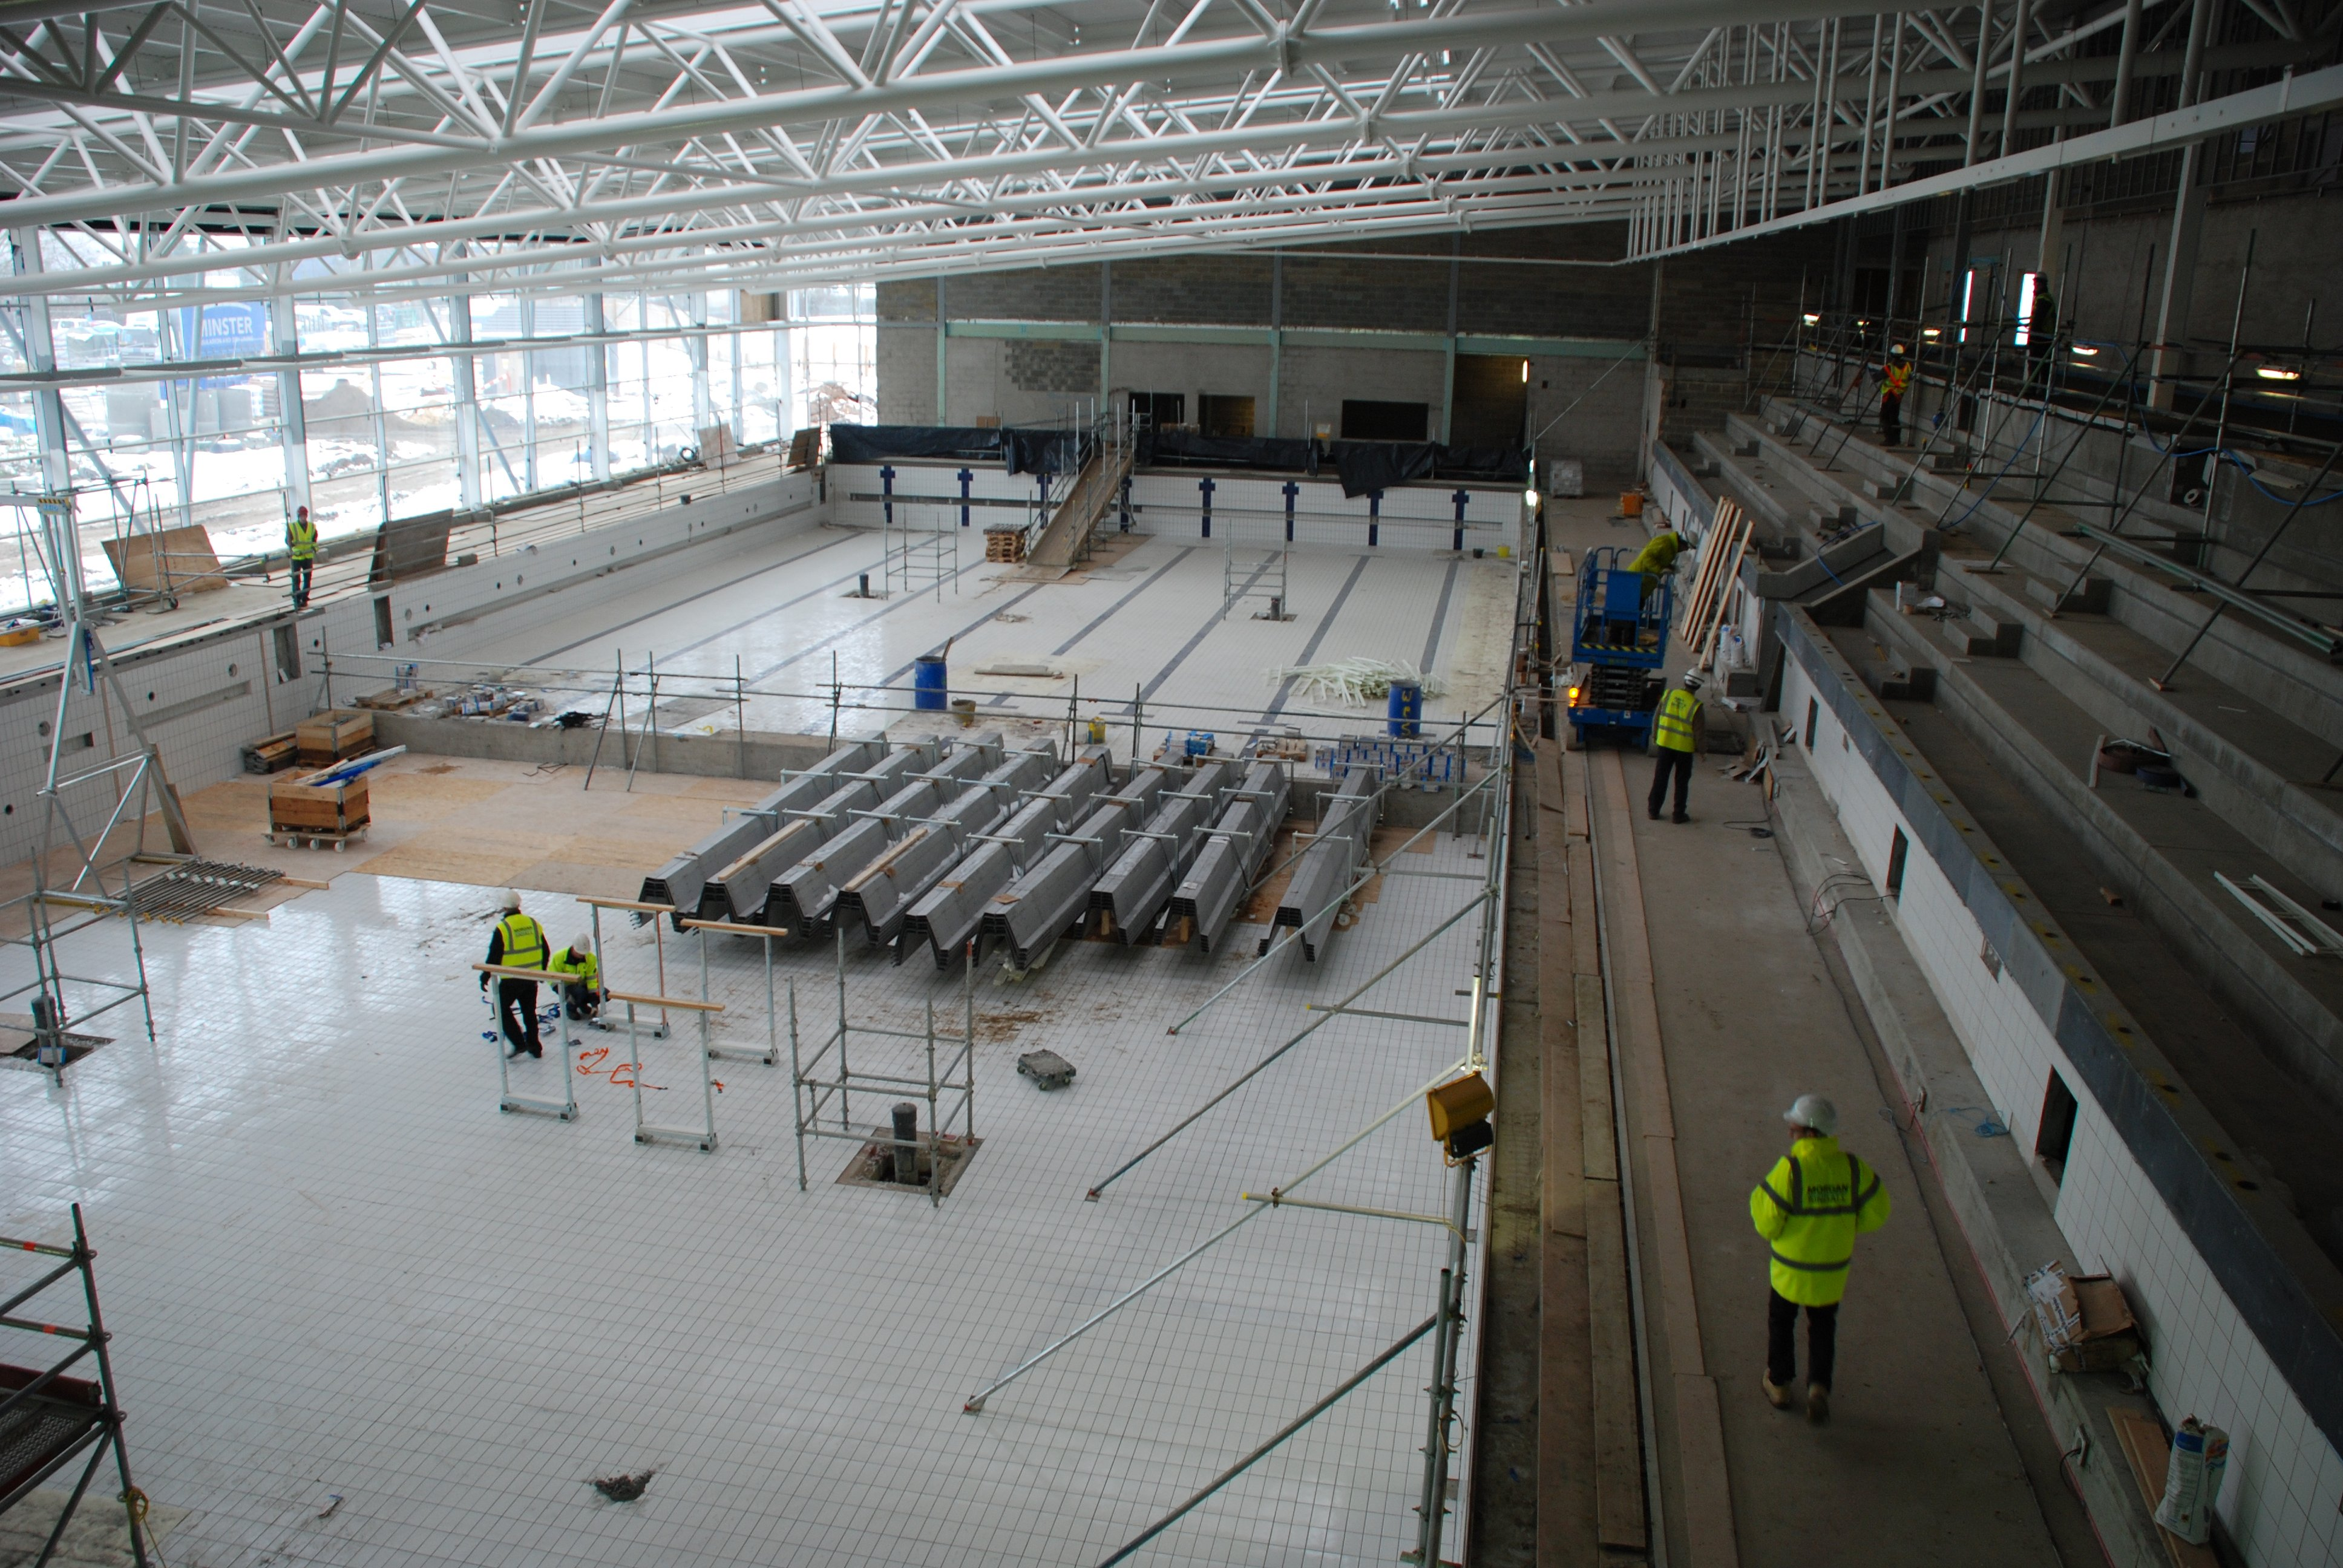 Basildon council county 39 s first 50 metre pool takes shape for Basildon sporting village swimming pool